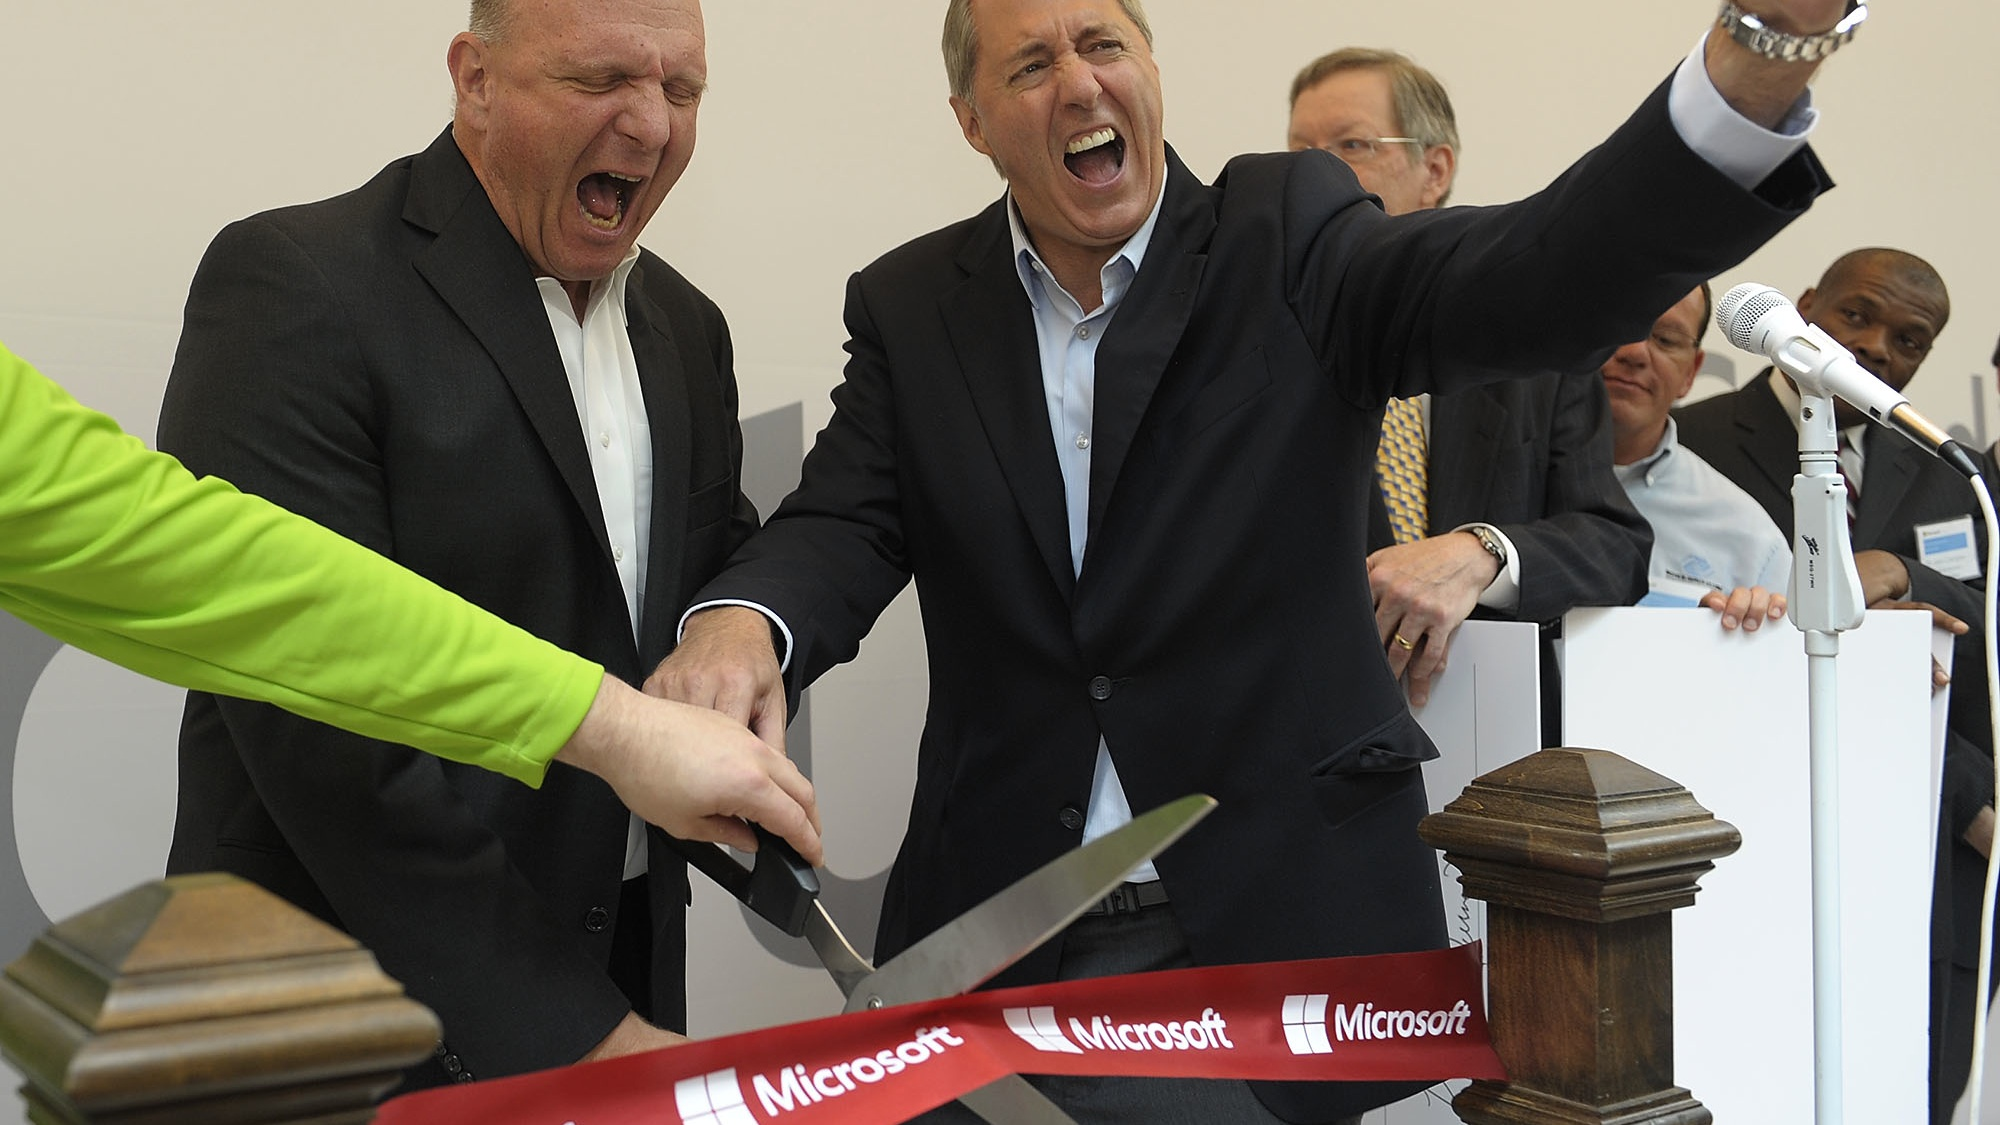 From left, Steve Ballmer, CEO of Microsoft, and John P. Fikany, Microsoft's General Manager of the Heartland District, celebrate after the ribbon cutting to open the new Microsoft store in Troy, Mich. Friday, June 28, 2013. (AP Photo/Detroit News, Clarence Tabb, Jr.)  DETROIT FREE PRESS OUT; HUFFINGTON POST OUT